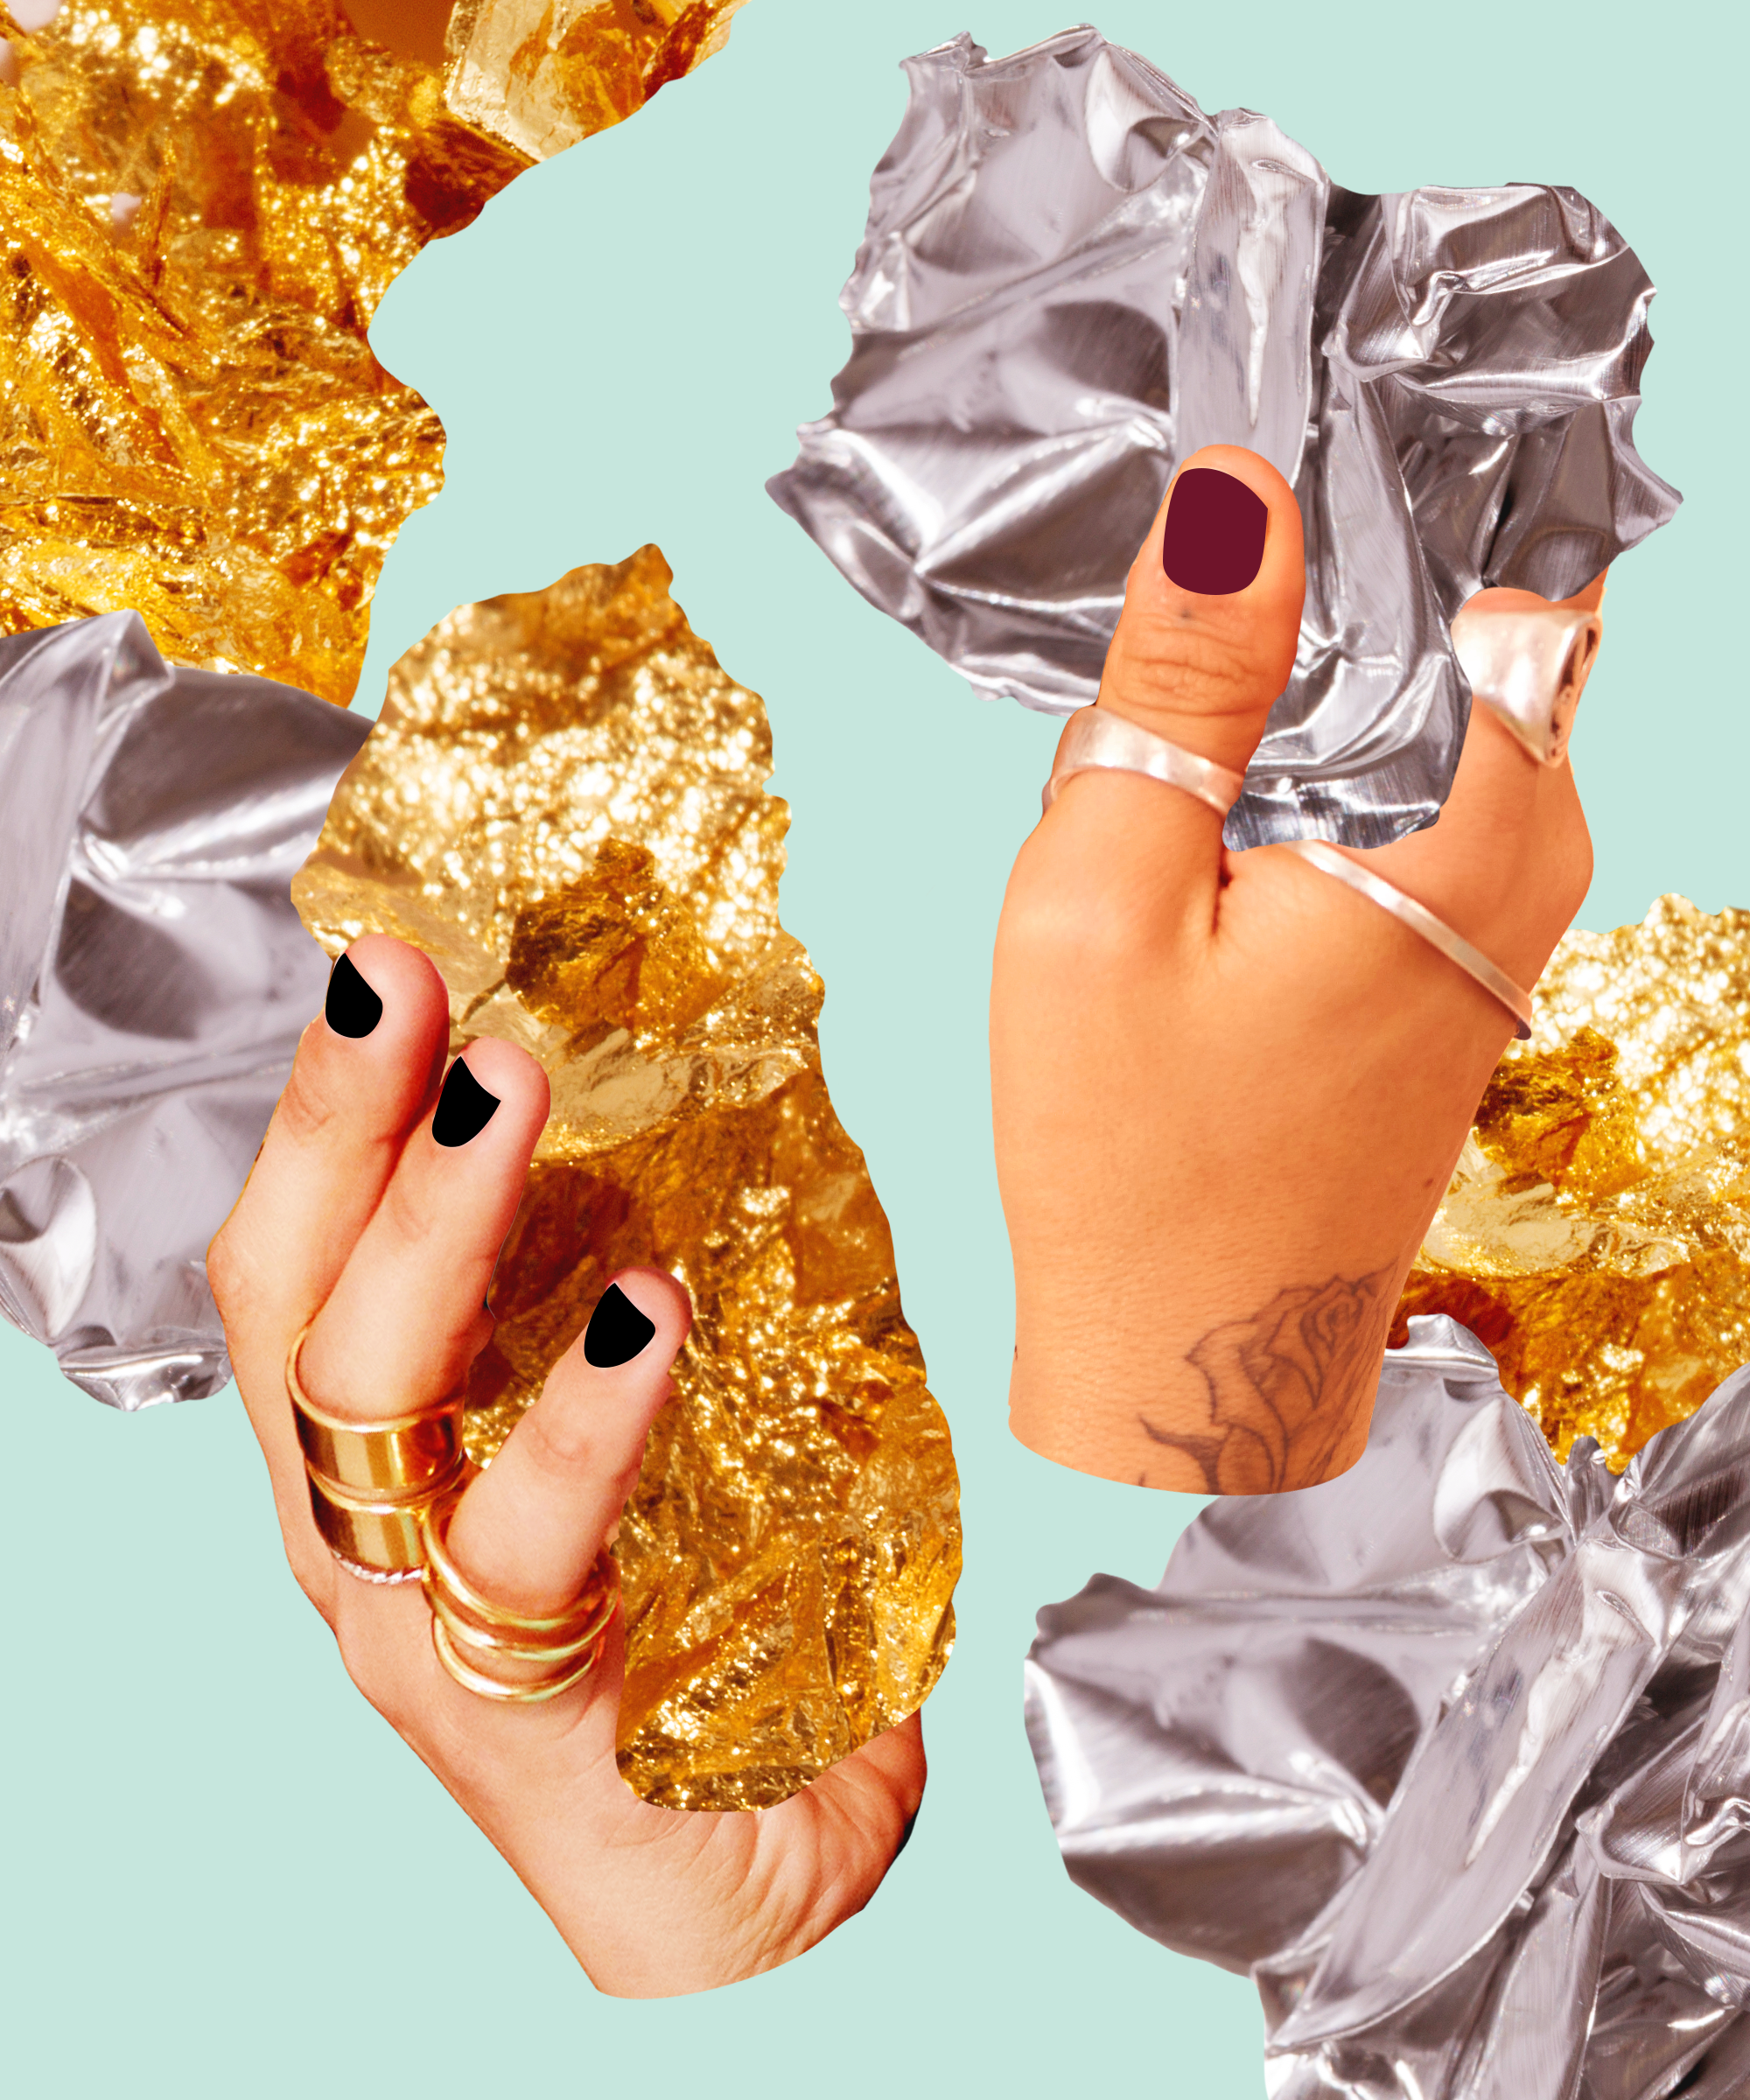 What Your Choice of Silver or Gold Jewelry Says About You